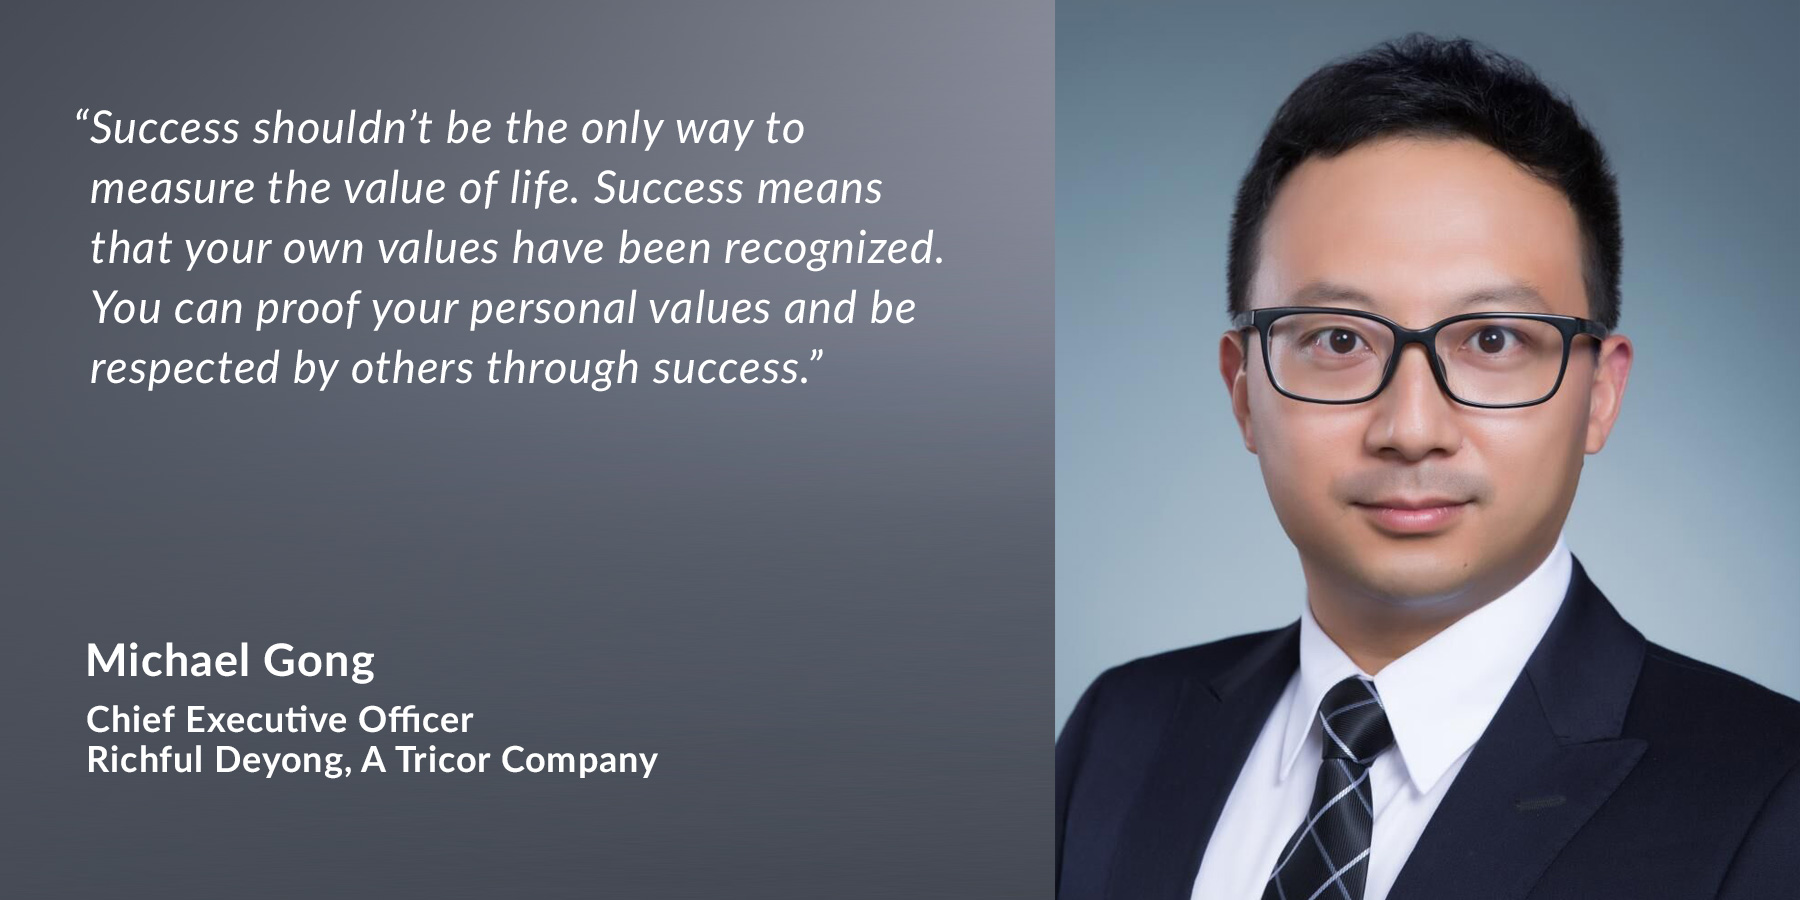 Michael Gong - CEO of Richful Deyong, A Tricor Company